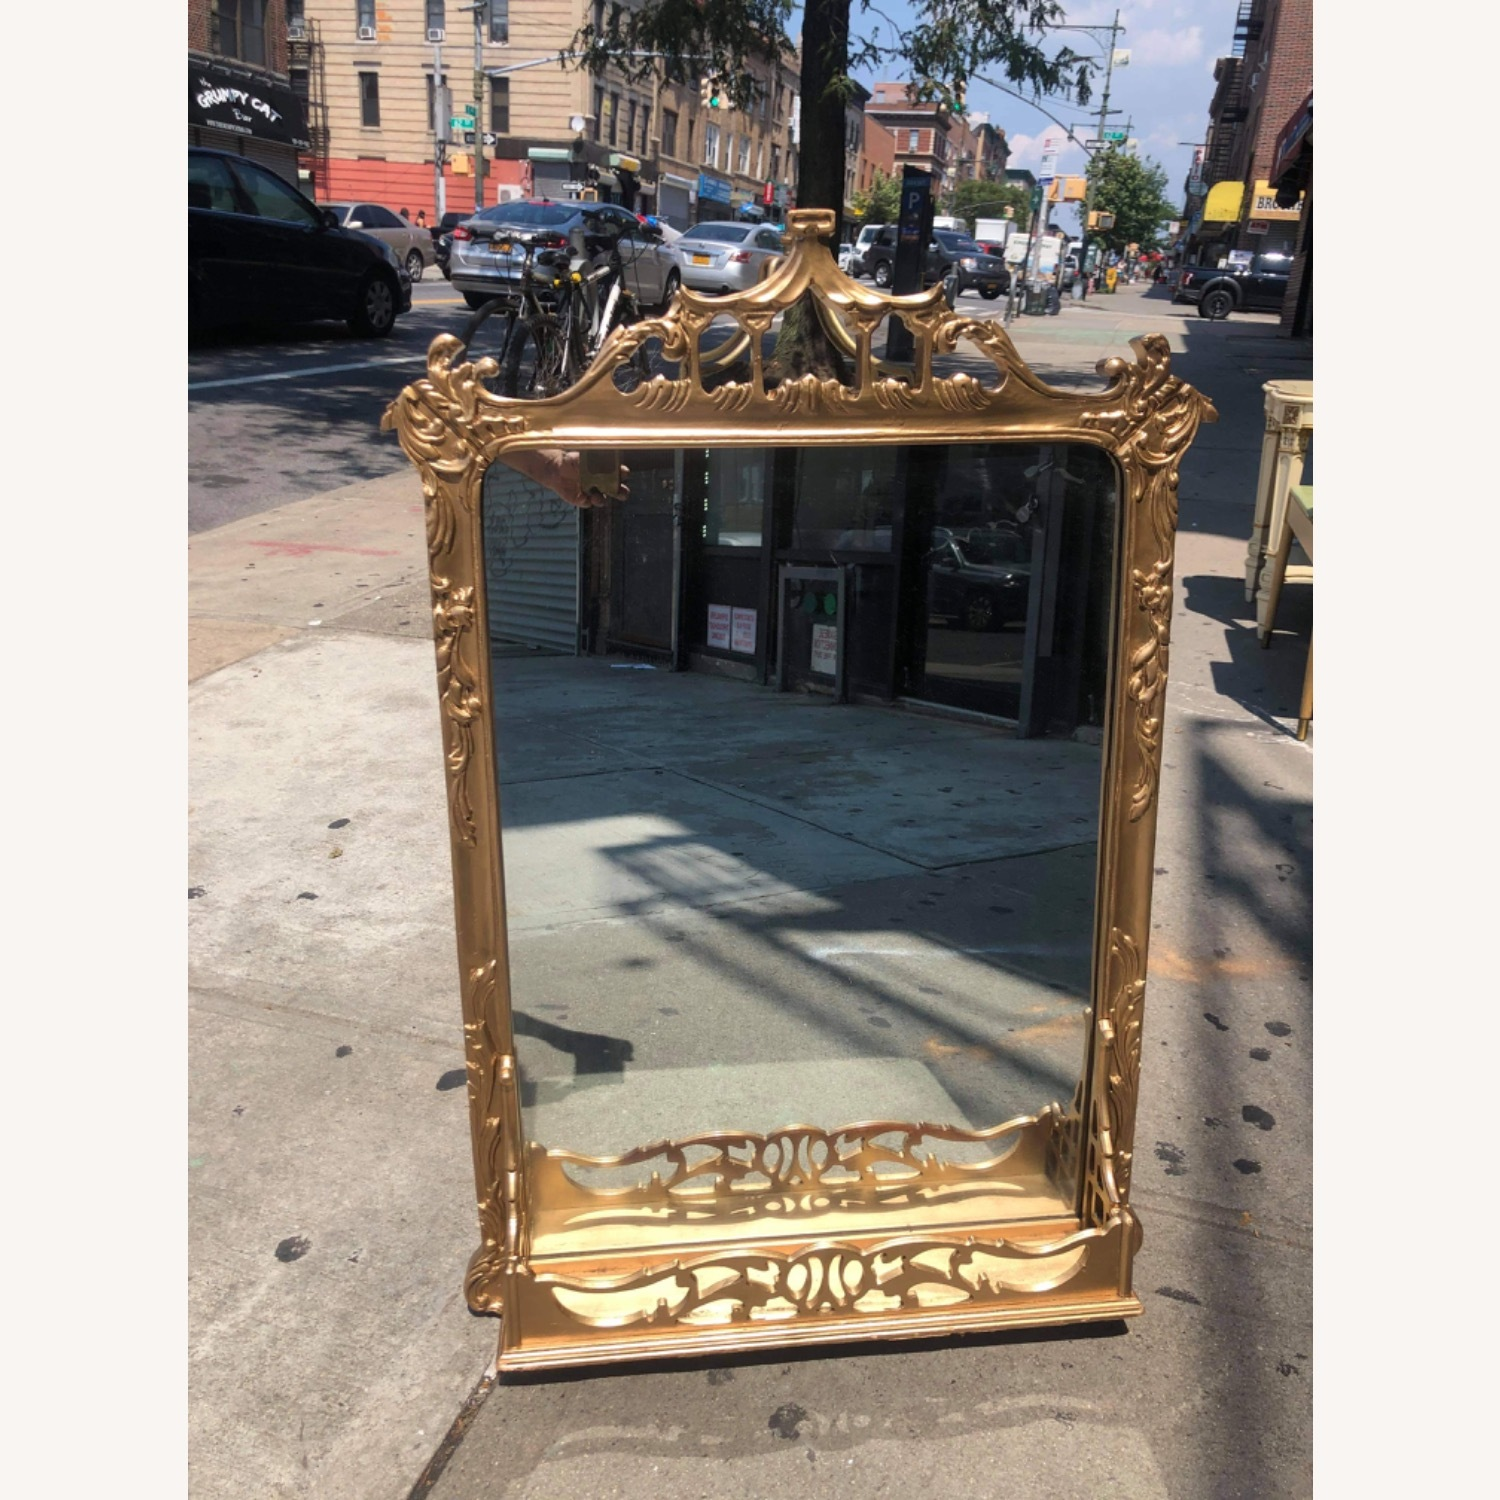 Antique 1900s Gold Painted Wooden Fram ed Mirror - image-14